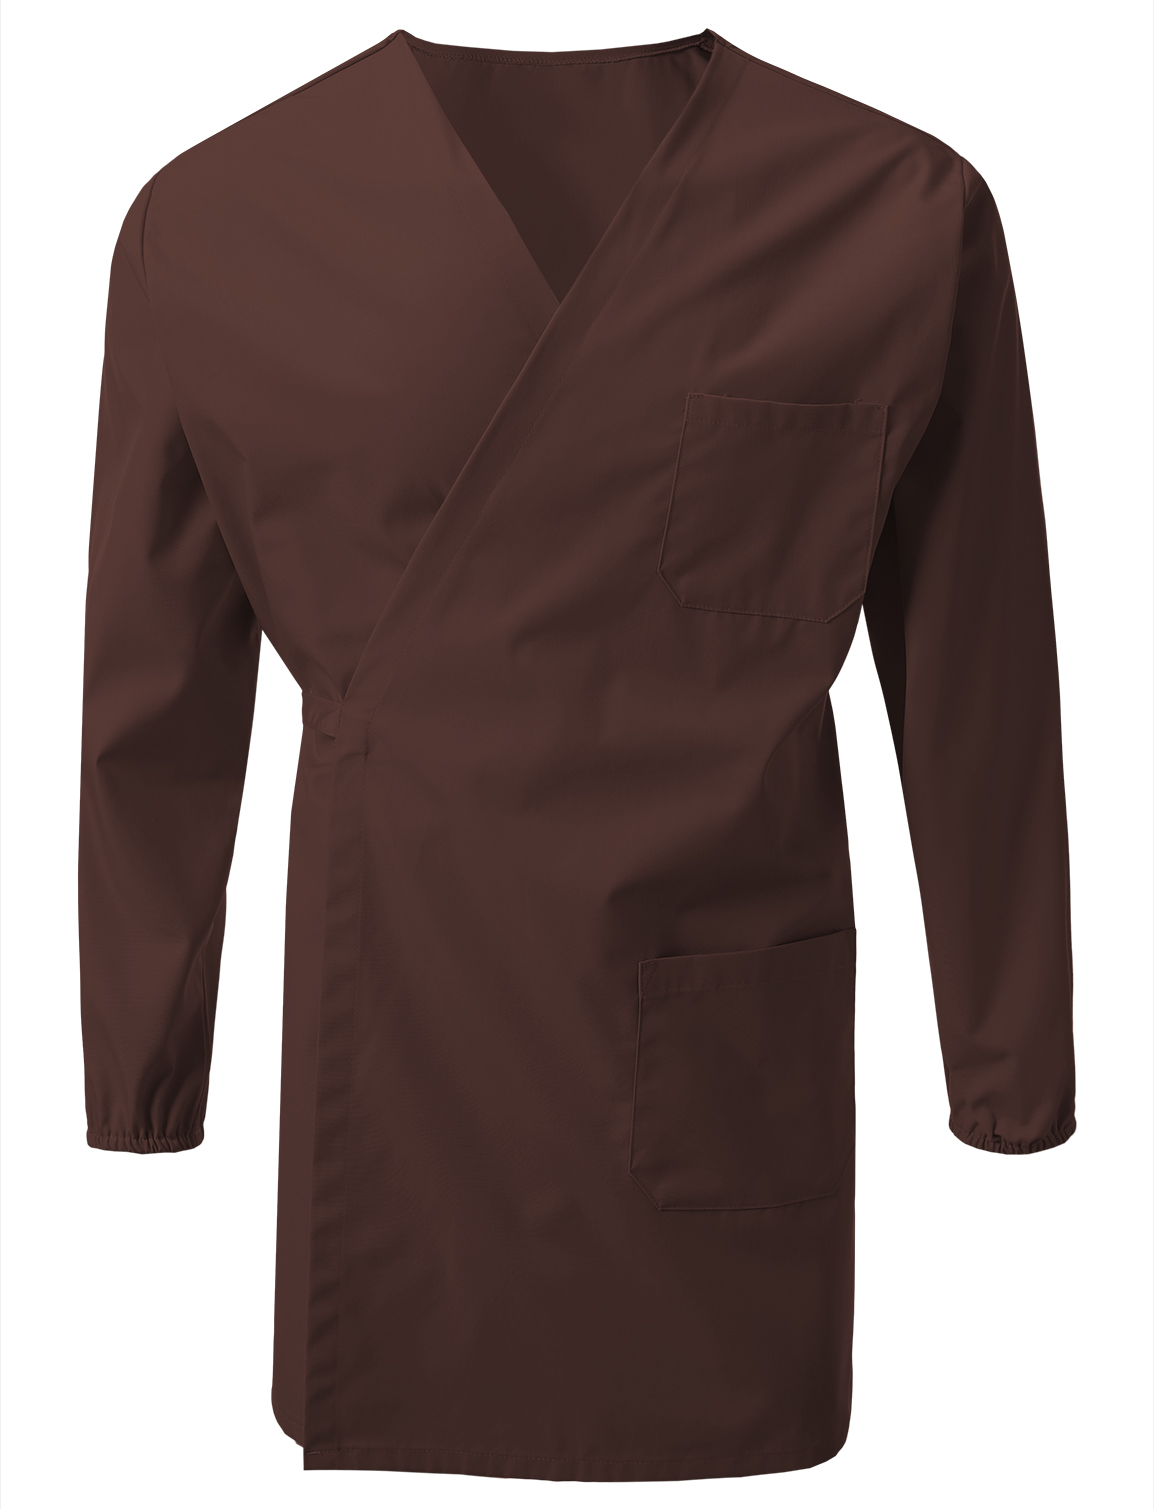 7Encounter Unisex Multifuctional Wrap Smock With Chest And Side Pockets Burgundy Size 2XL/3XL